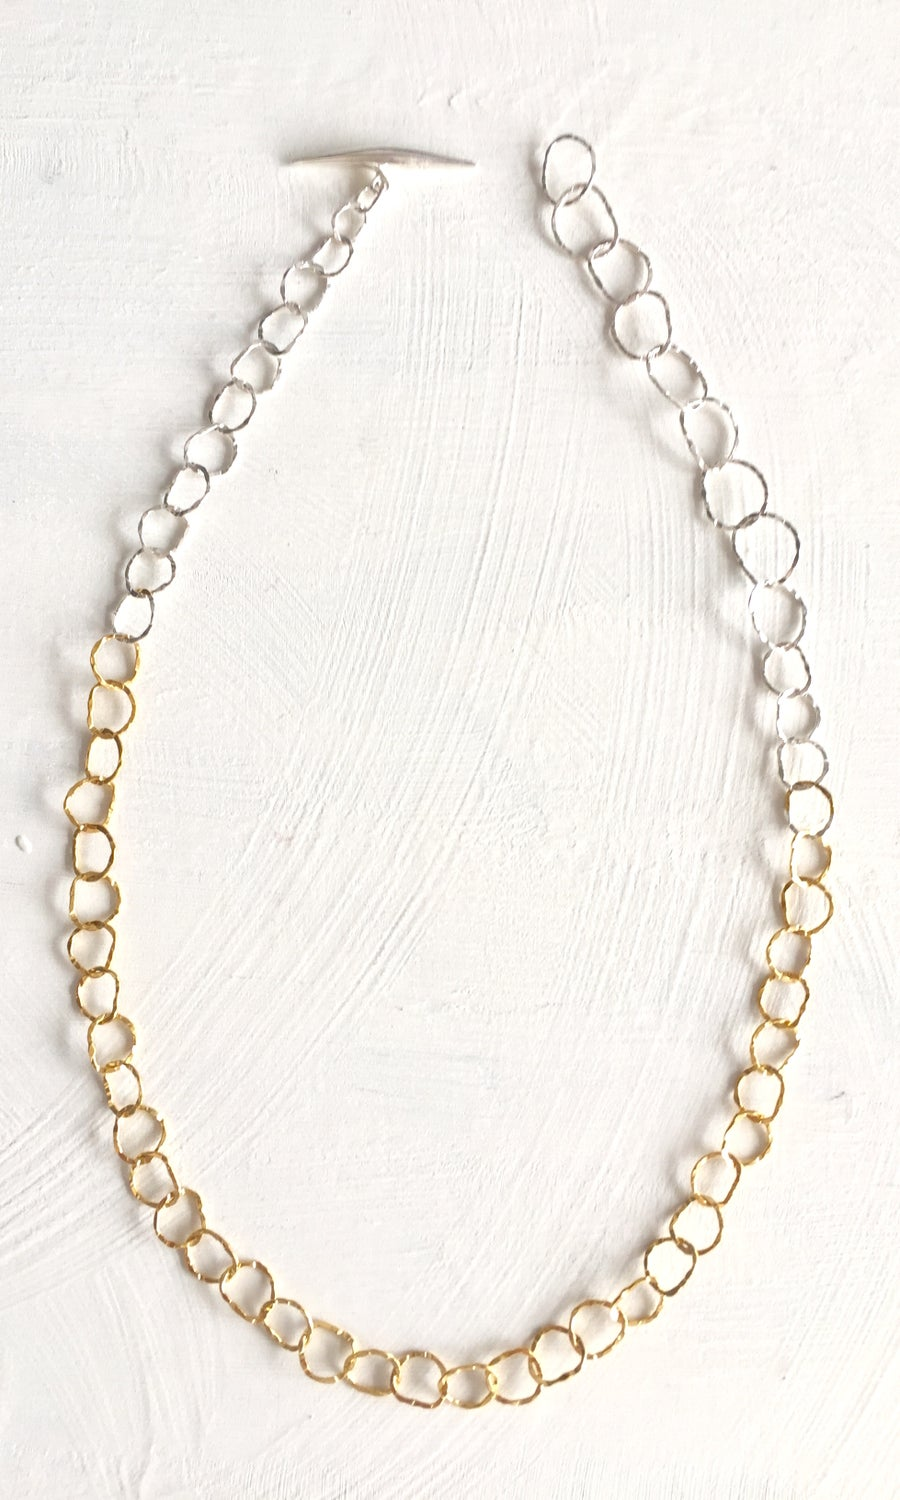 Image of Afiok Single Two-Tone Necklace #1